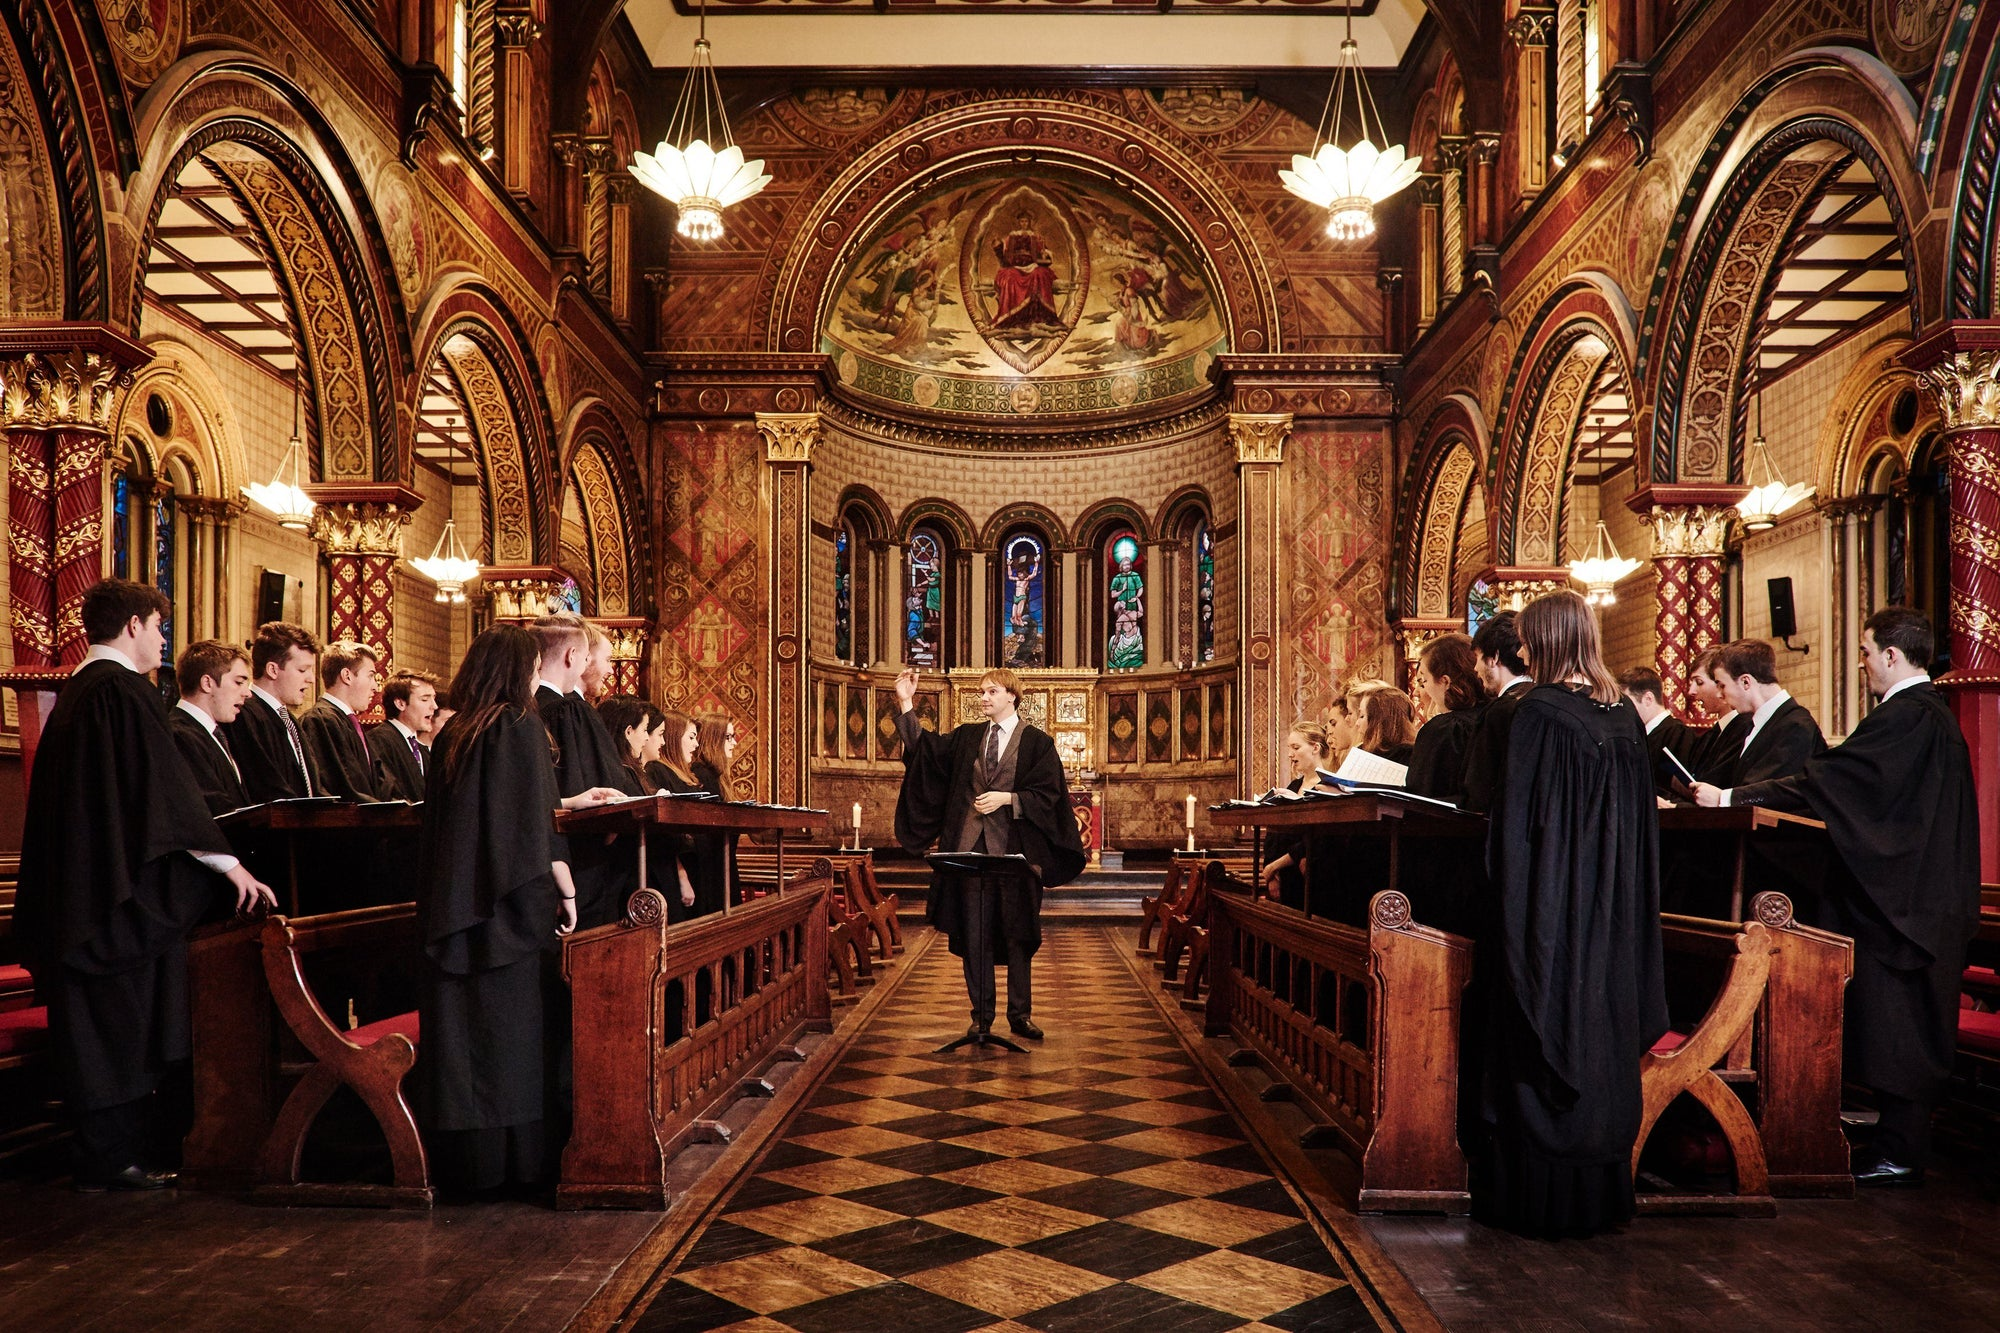 The Choir of King's College London